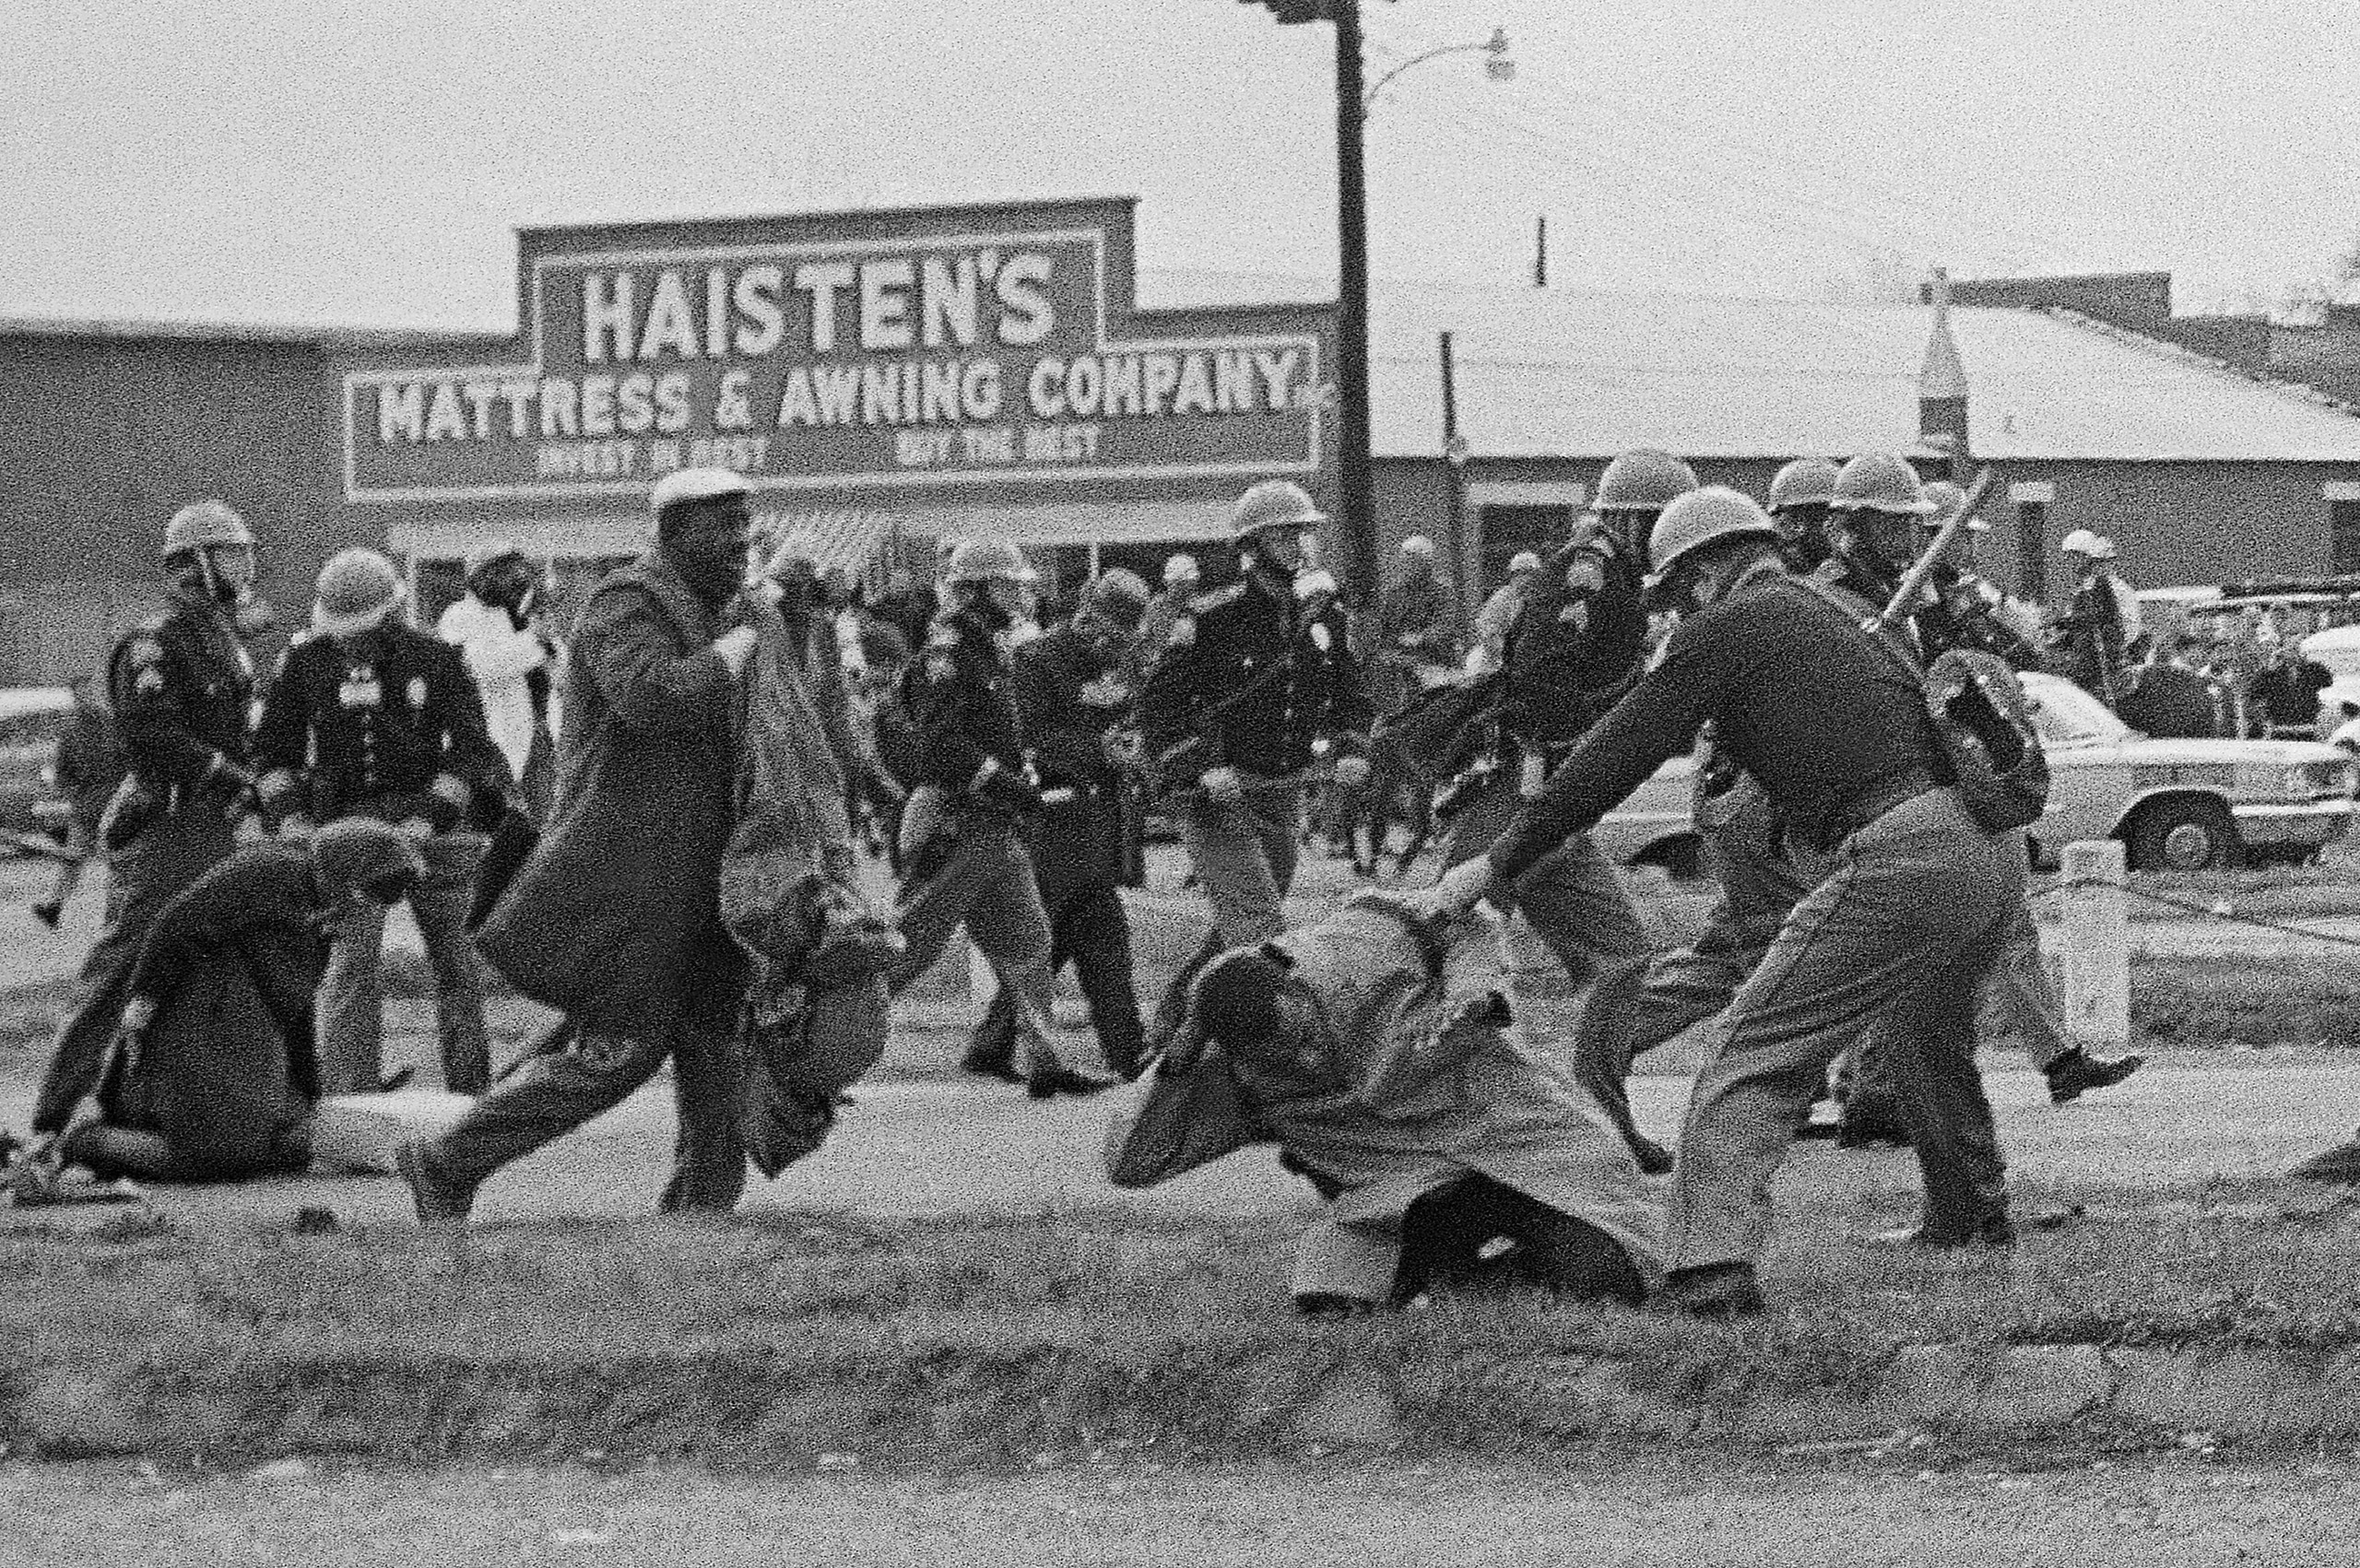 State troopers swing billy clubs to break up a civil rights voting march in Selma, Alabama., March 7, 1965. John Lewis, chairman of the Student Nonviolent Coordinating Committee (in the foreground) is being beaten by a state trooper.